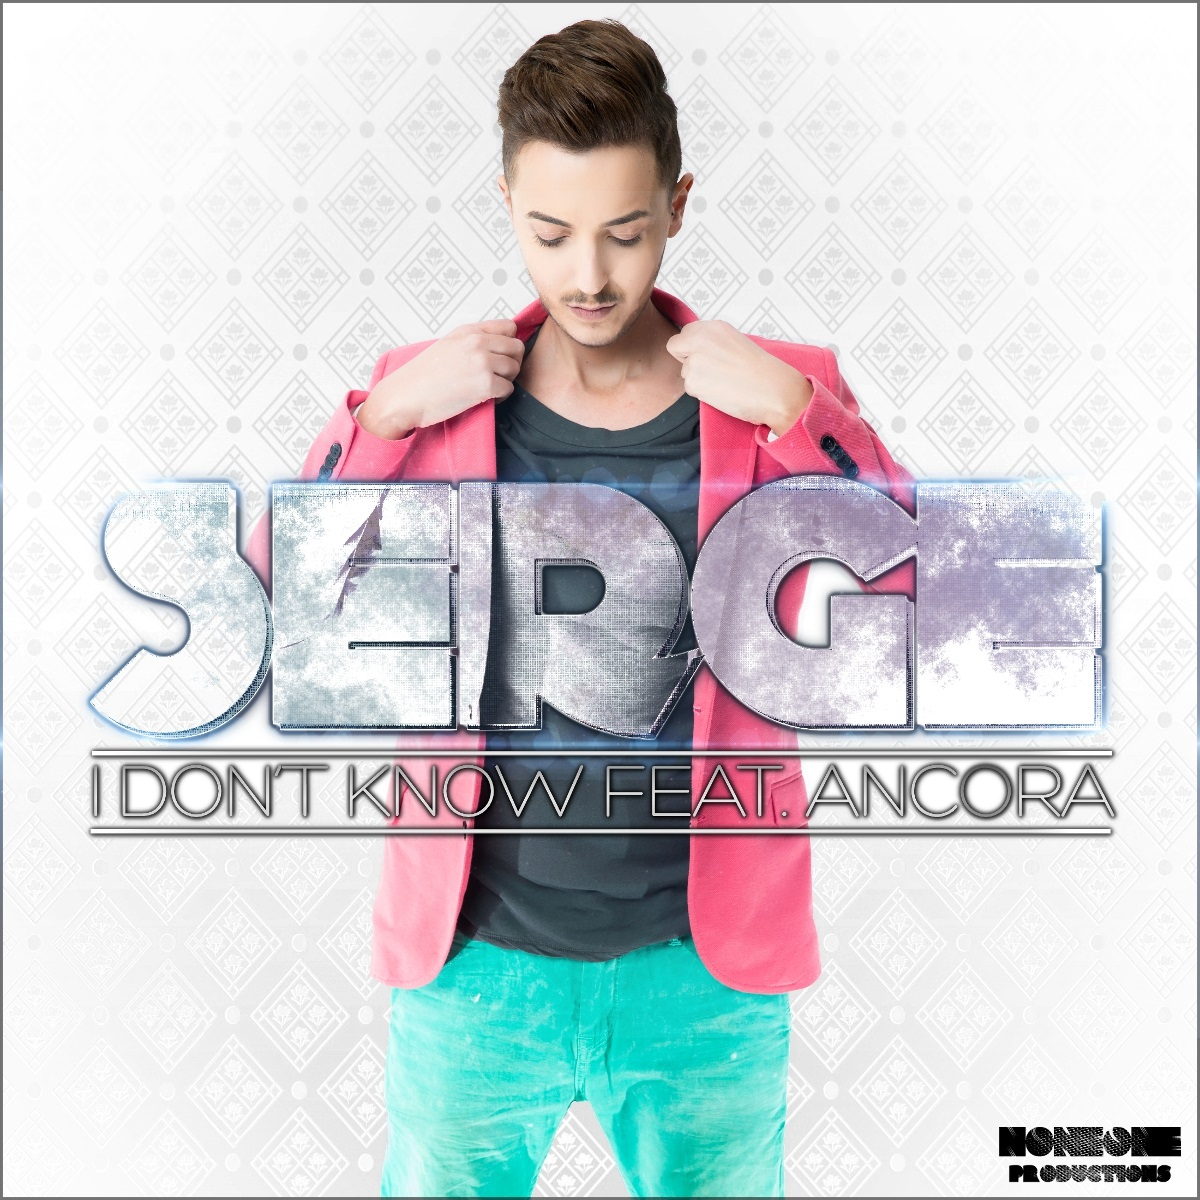 Serge ancora i dont know